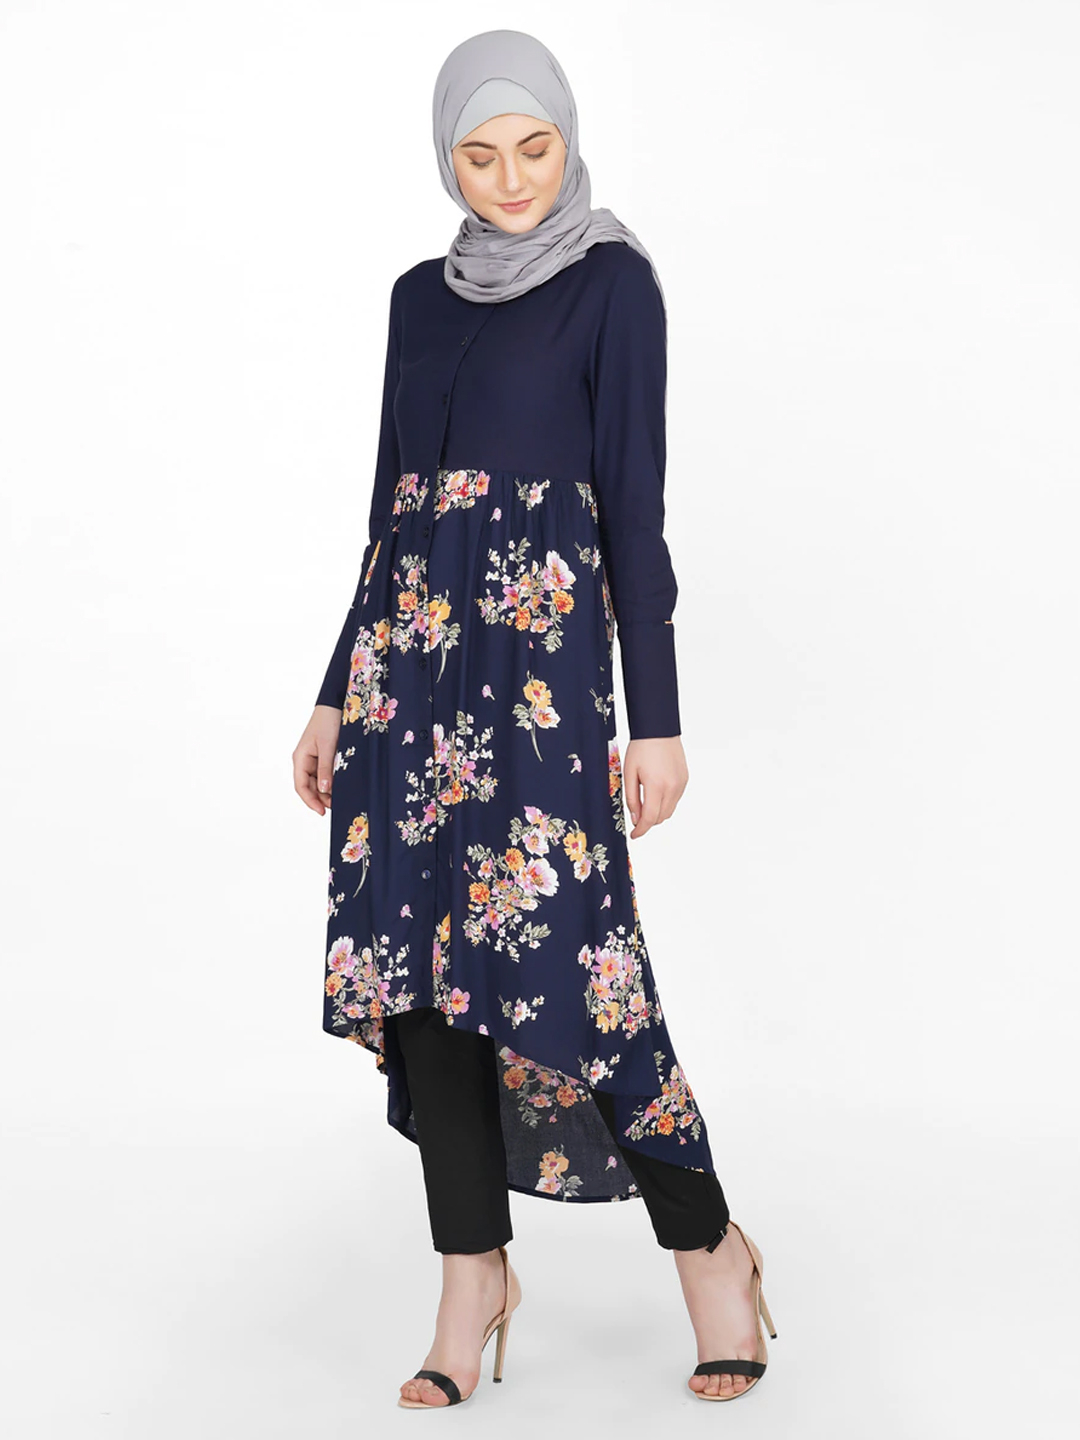 100% Rayon Shirt Dress With Solid Floral Mix In Navy